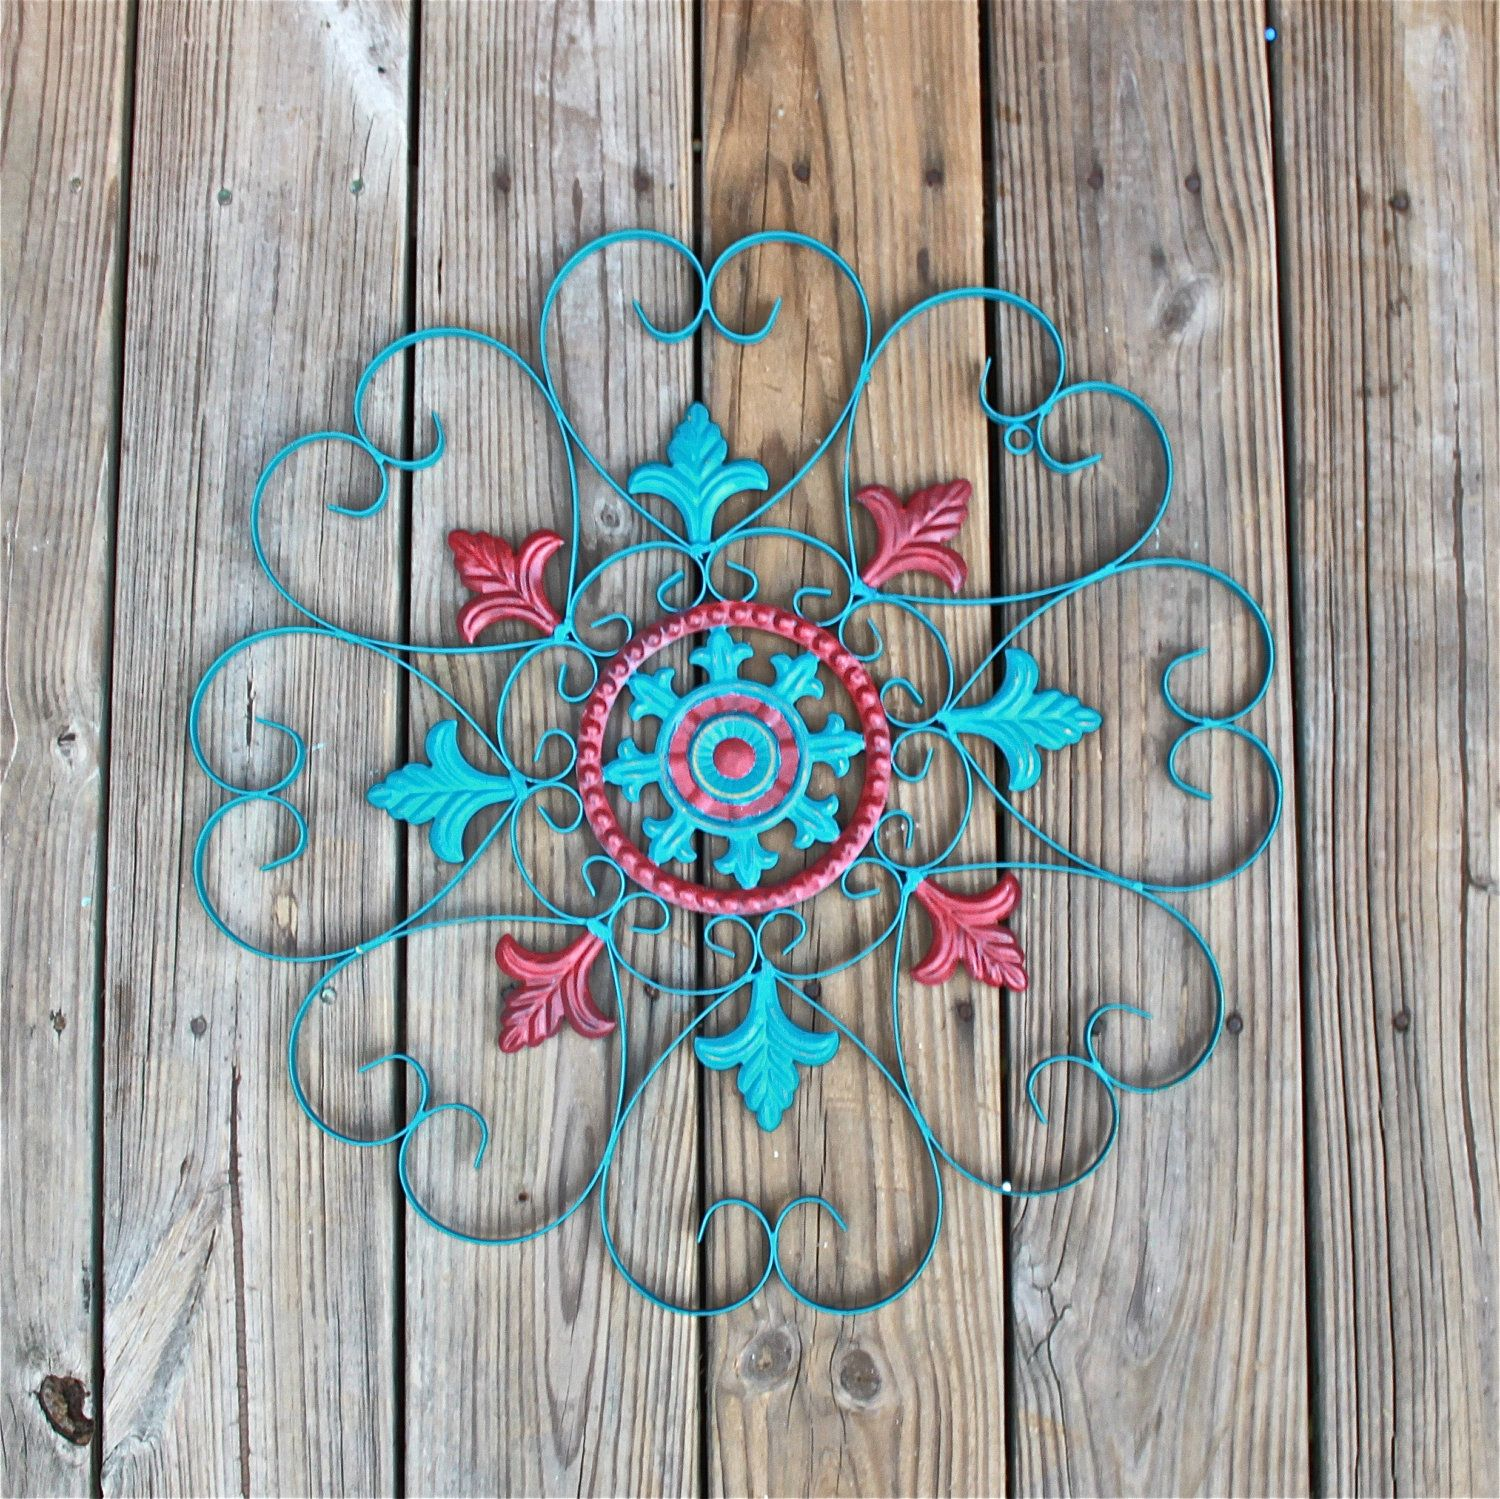 Metal Wall Decor/ Teal Blue/ Red Distressed Shabby Chic Art/ Painted Wall  Furnishings · Patio IdeasYard IdeasOutdoor ...